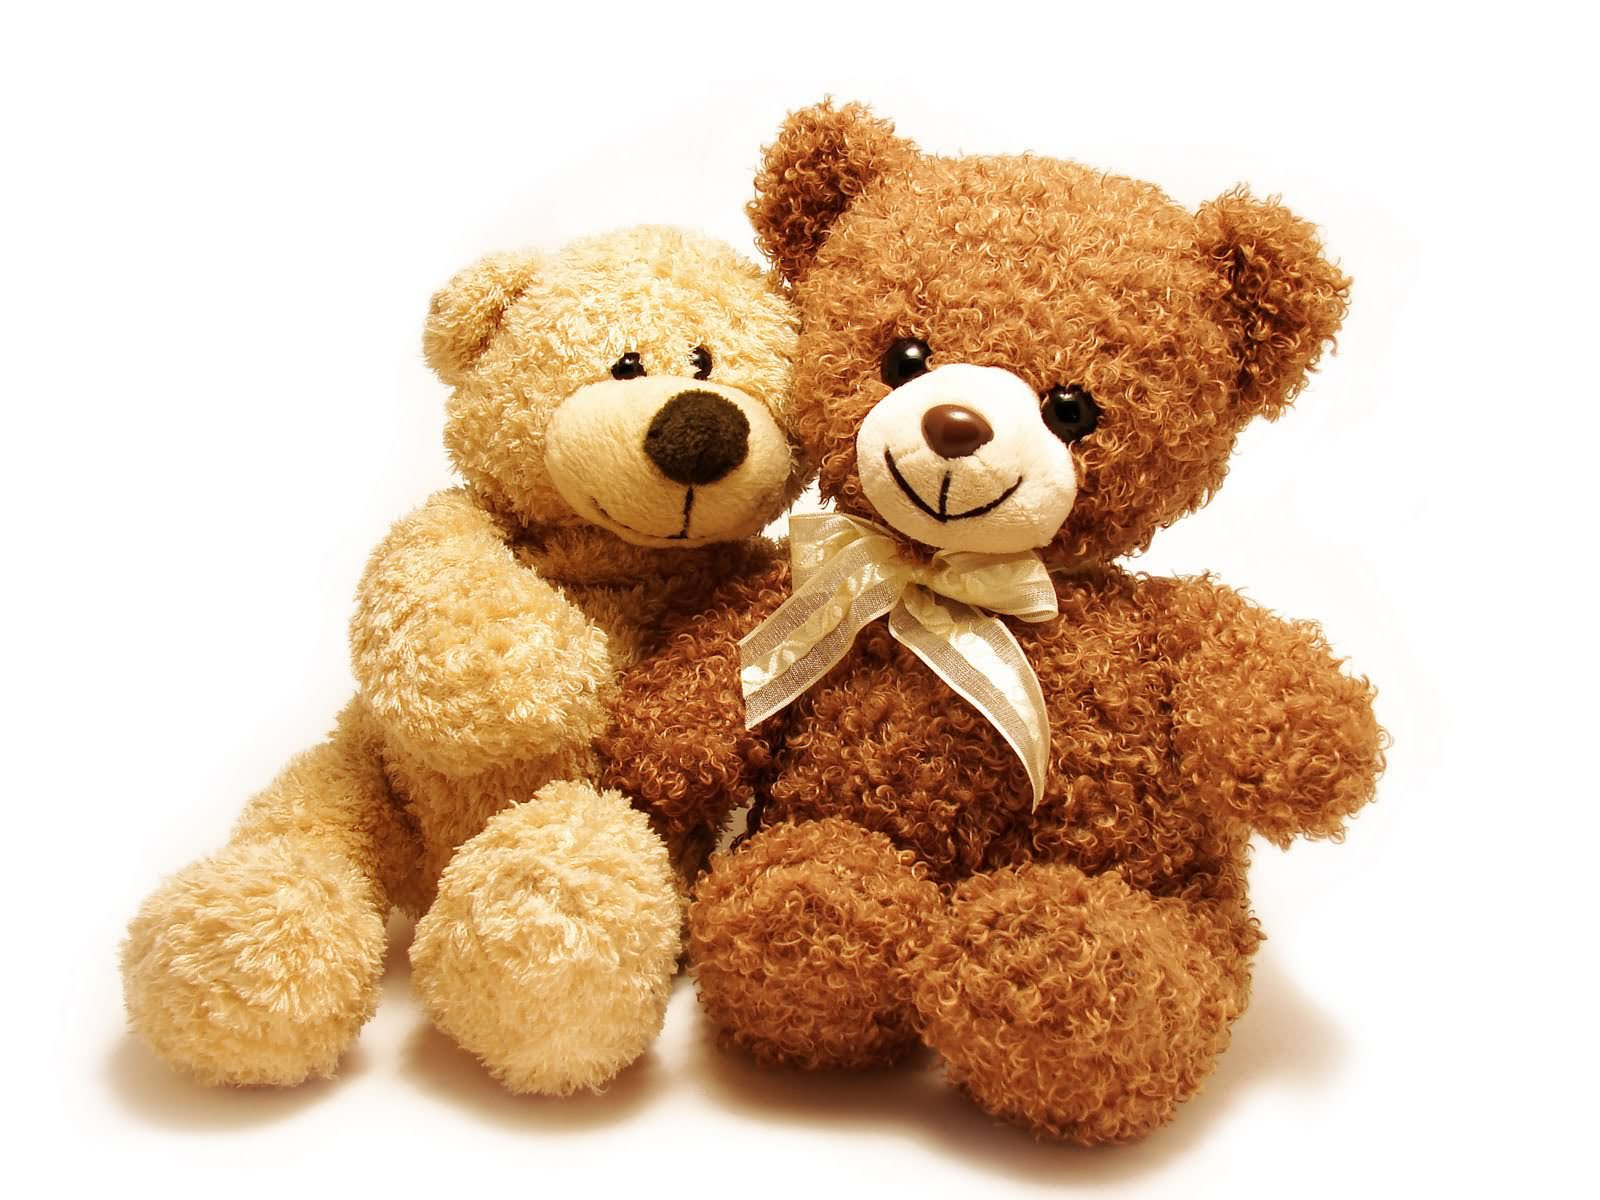 Cute Teddy Bear Wallpaper